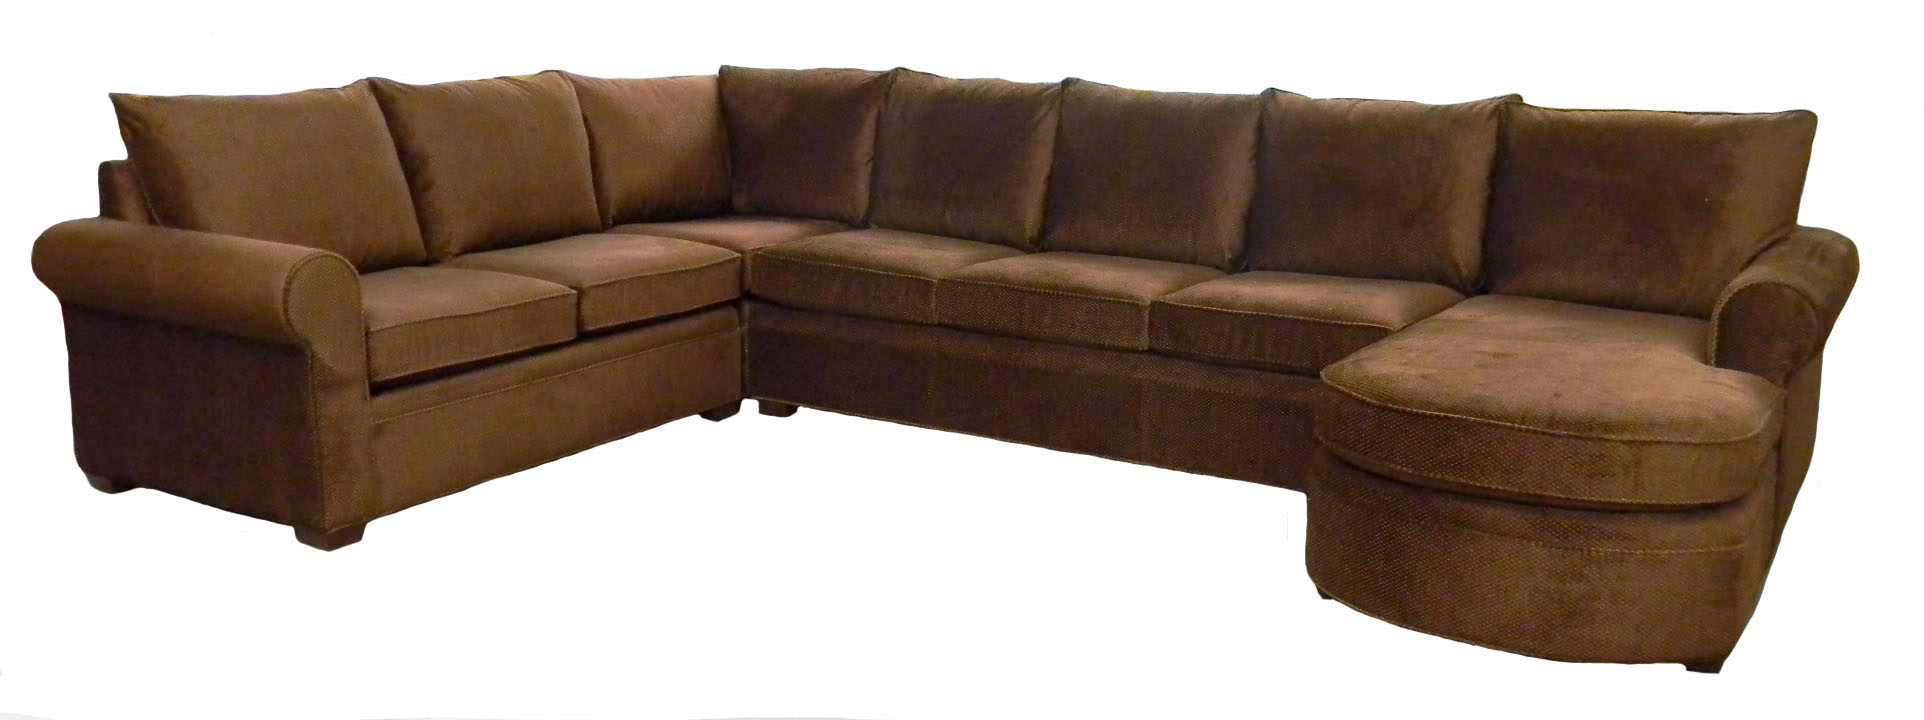 Photos examples custom sectional sofas carolina chair for Sofa sofa furniture